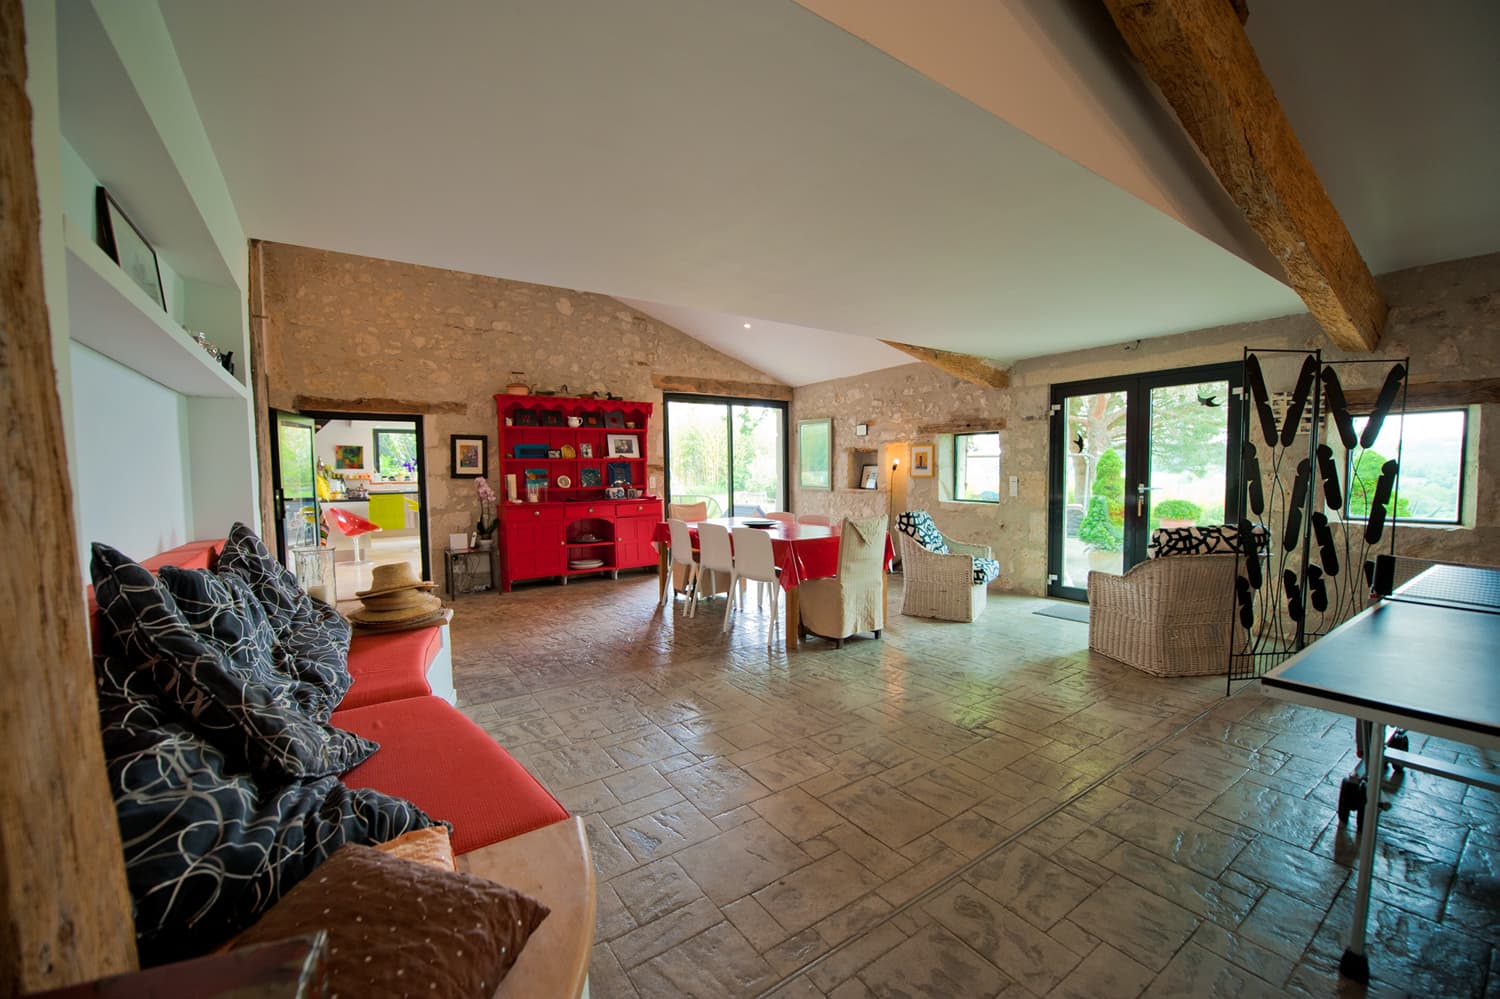 Dining and games room in Dordogne self-catering accommodation